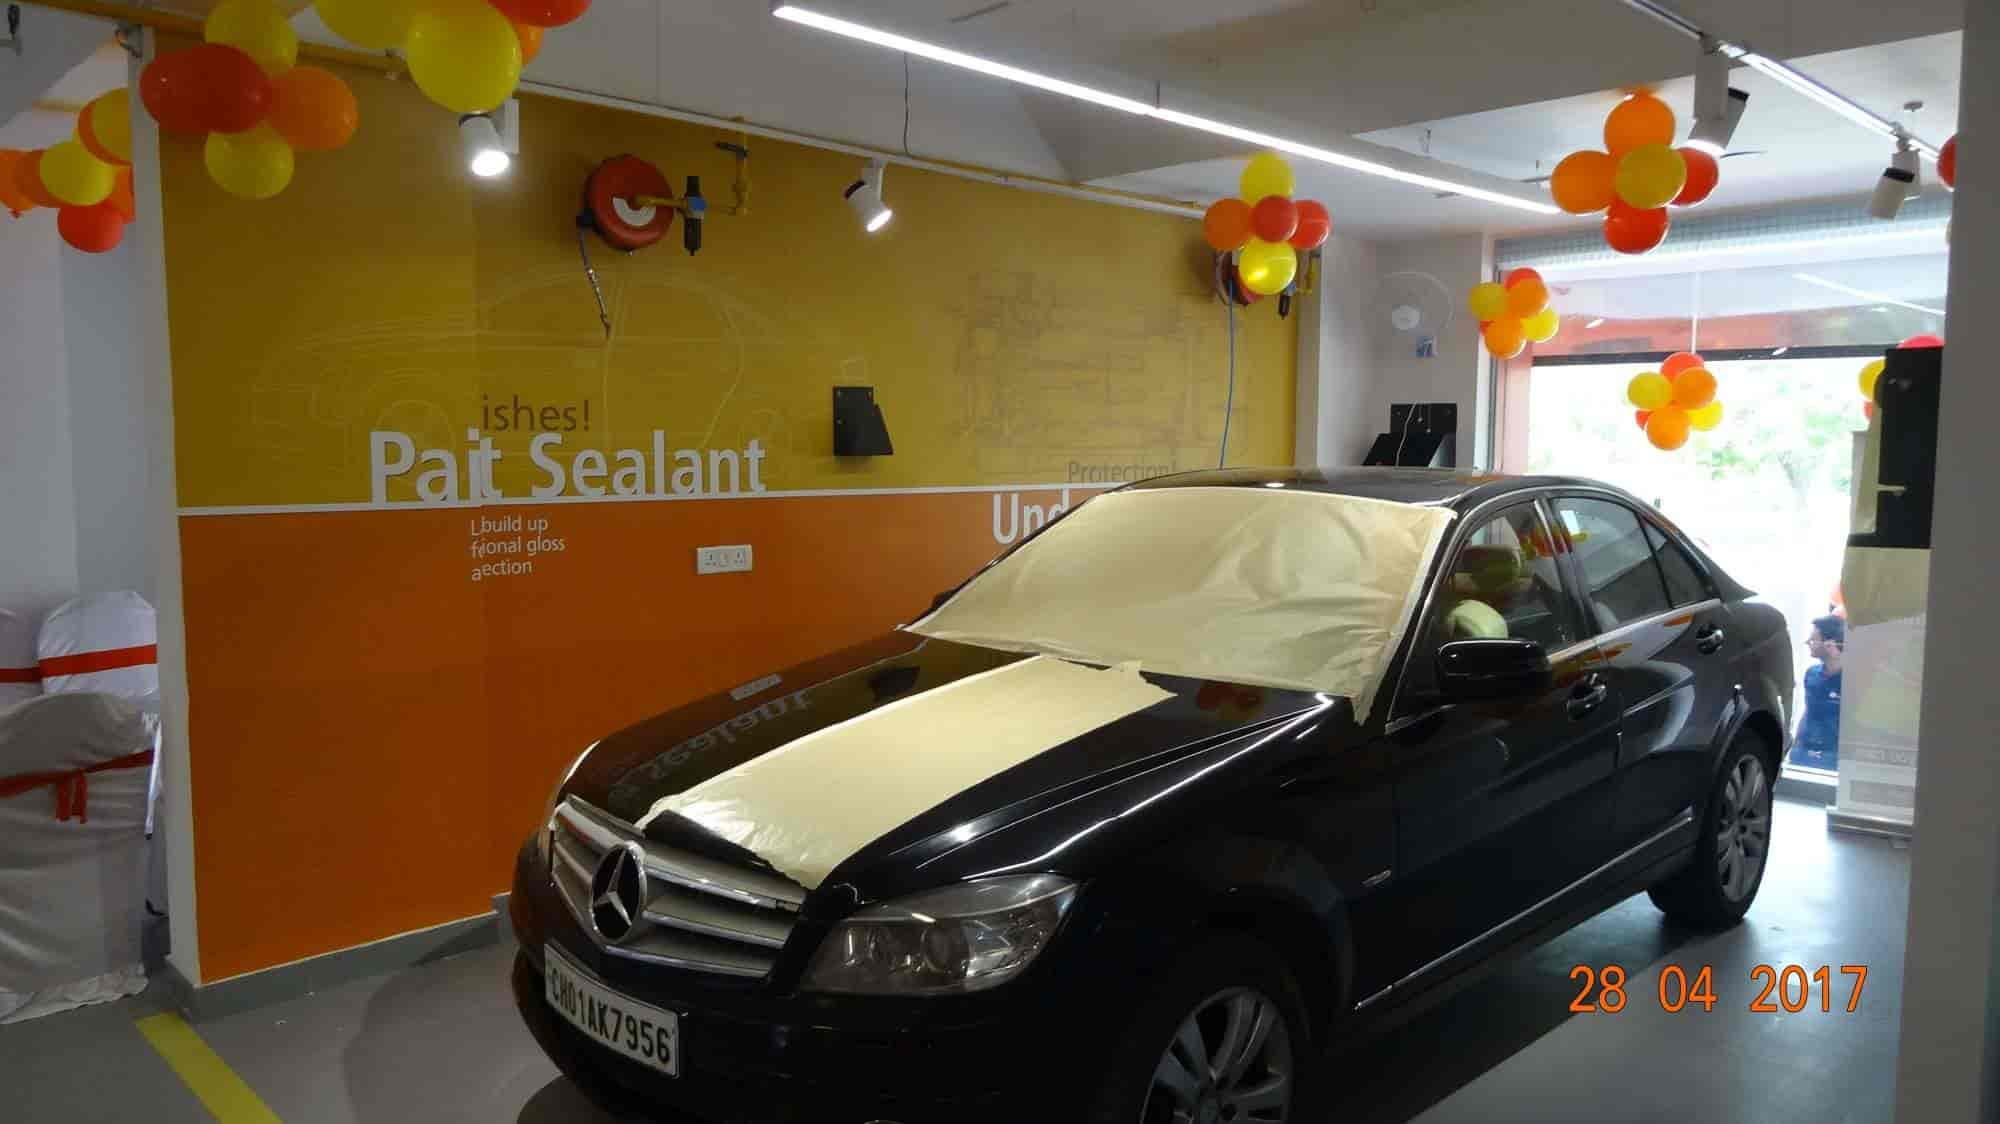 3m Car Care, Noida Sector 104 - Car Detailing Services in